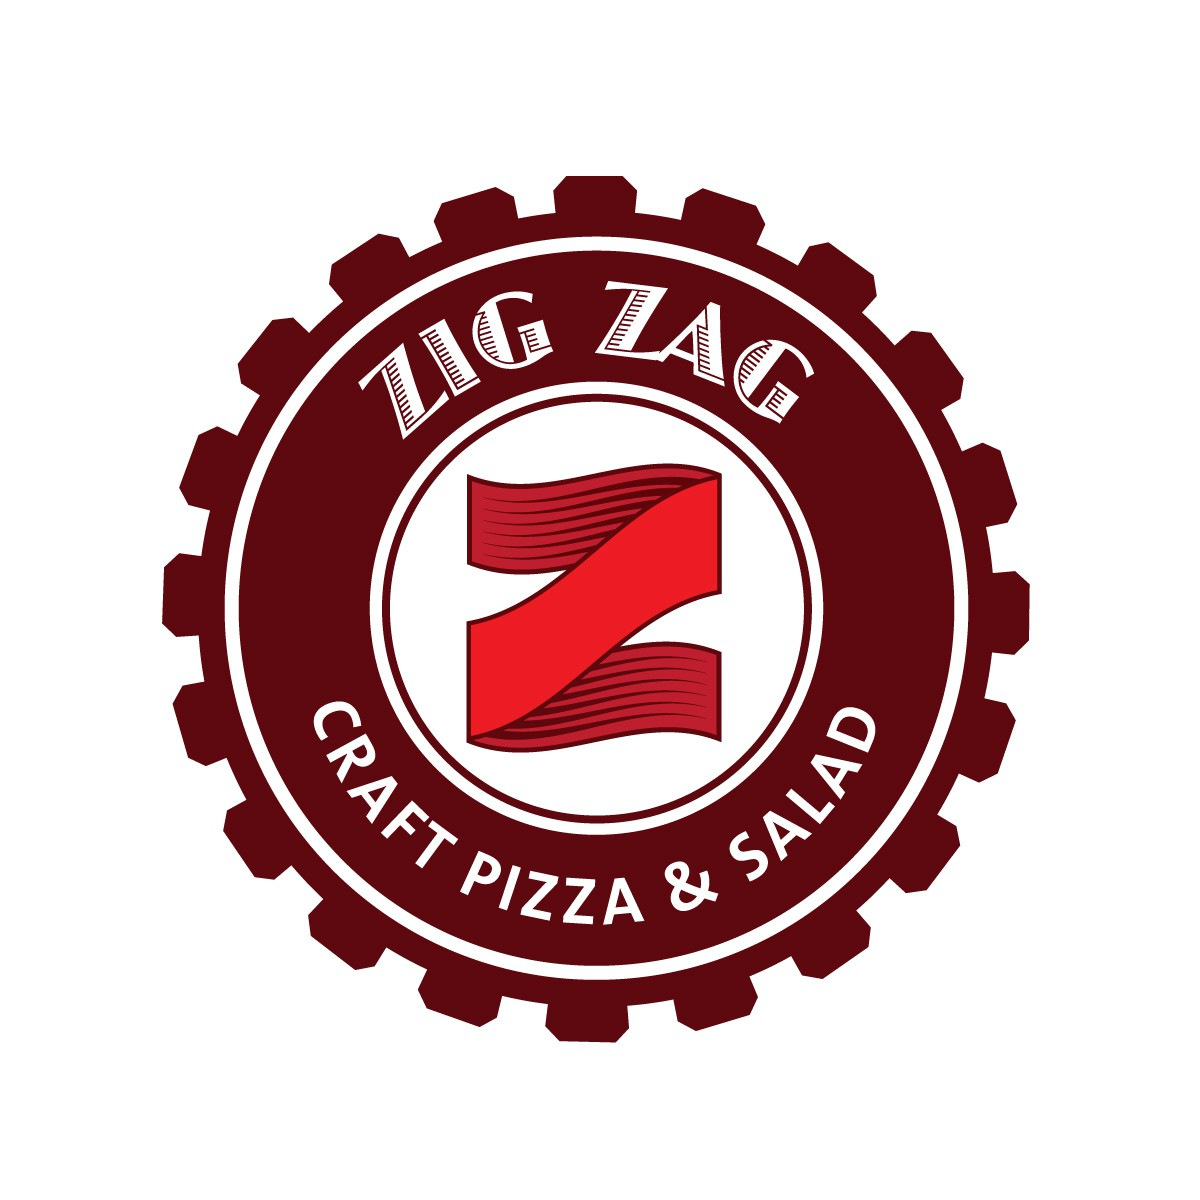 New logo wanted for Zig Zag